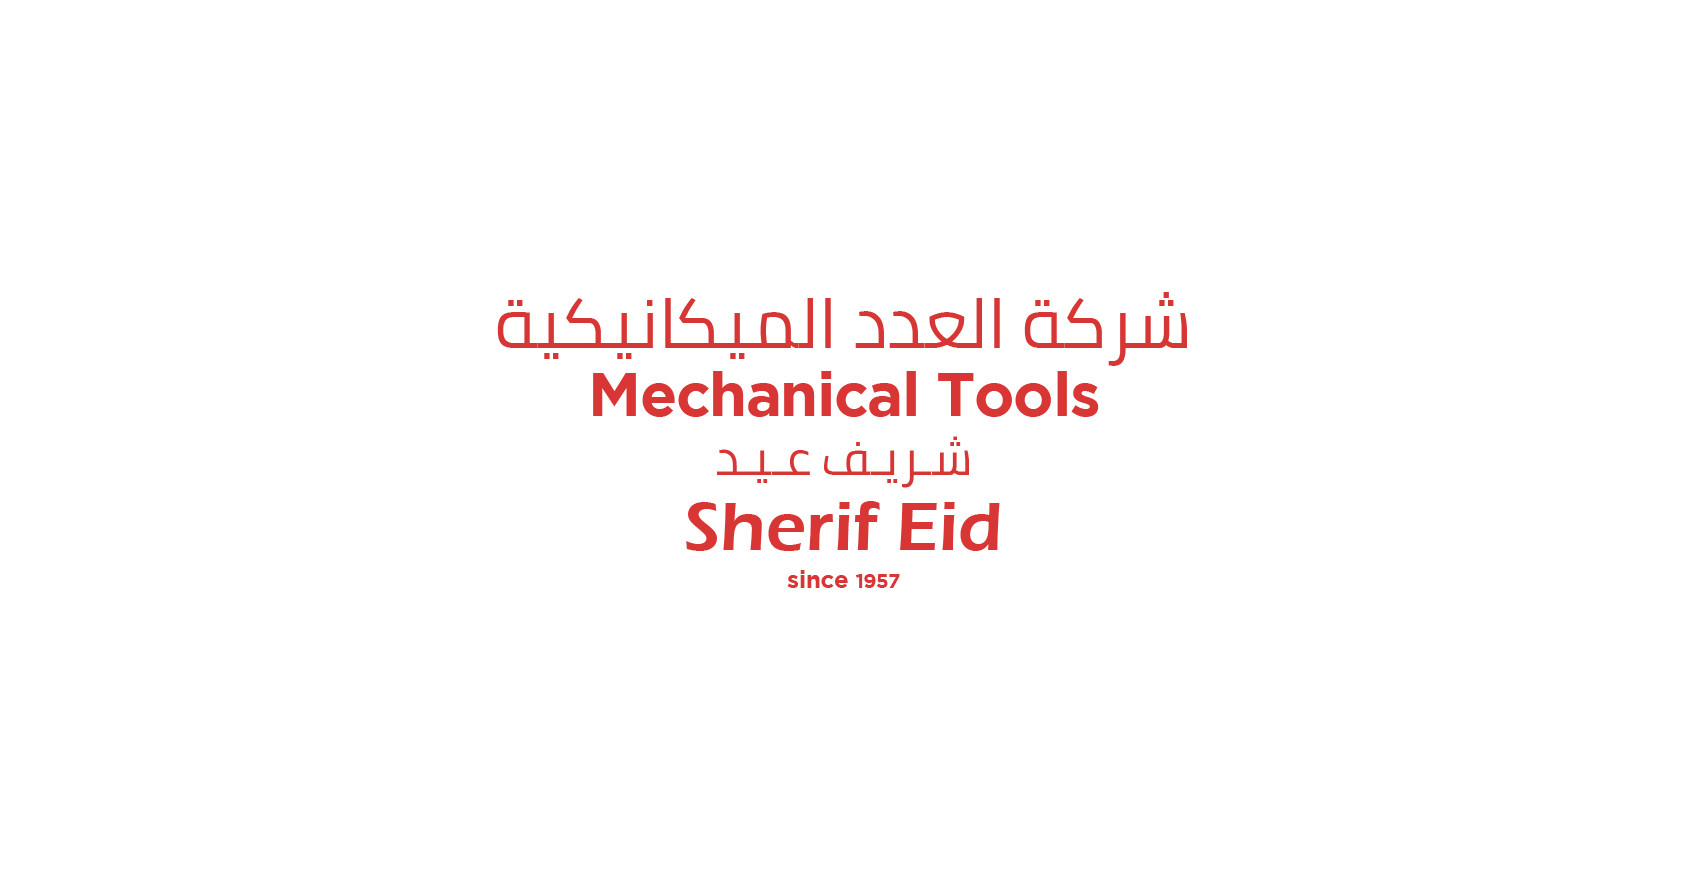 صورة Job: Senior Sales Representative (Outdoor) – Cairo at Mechanical Tools in Cairo, Egypt